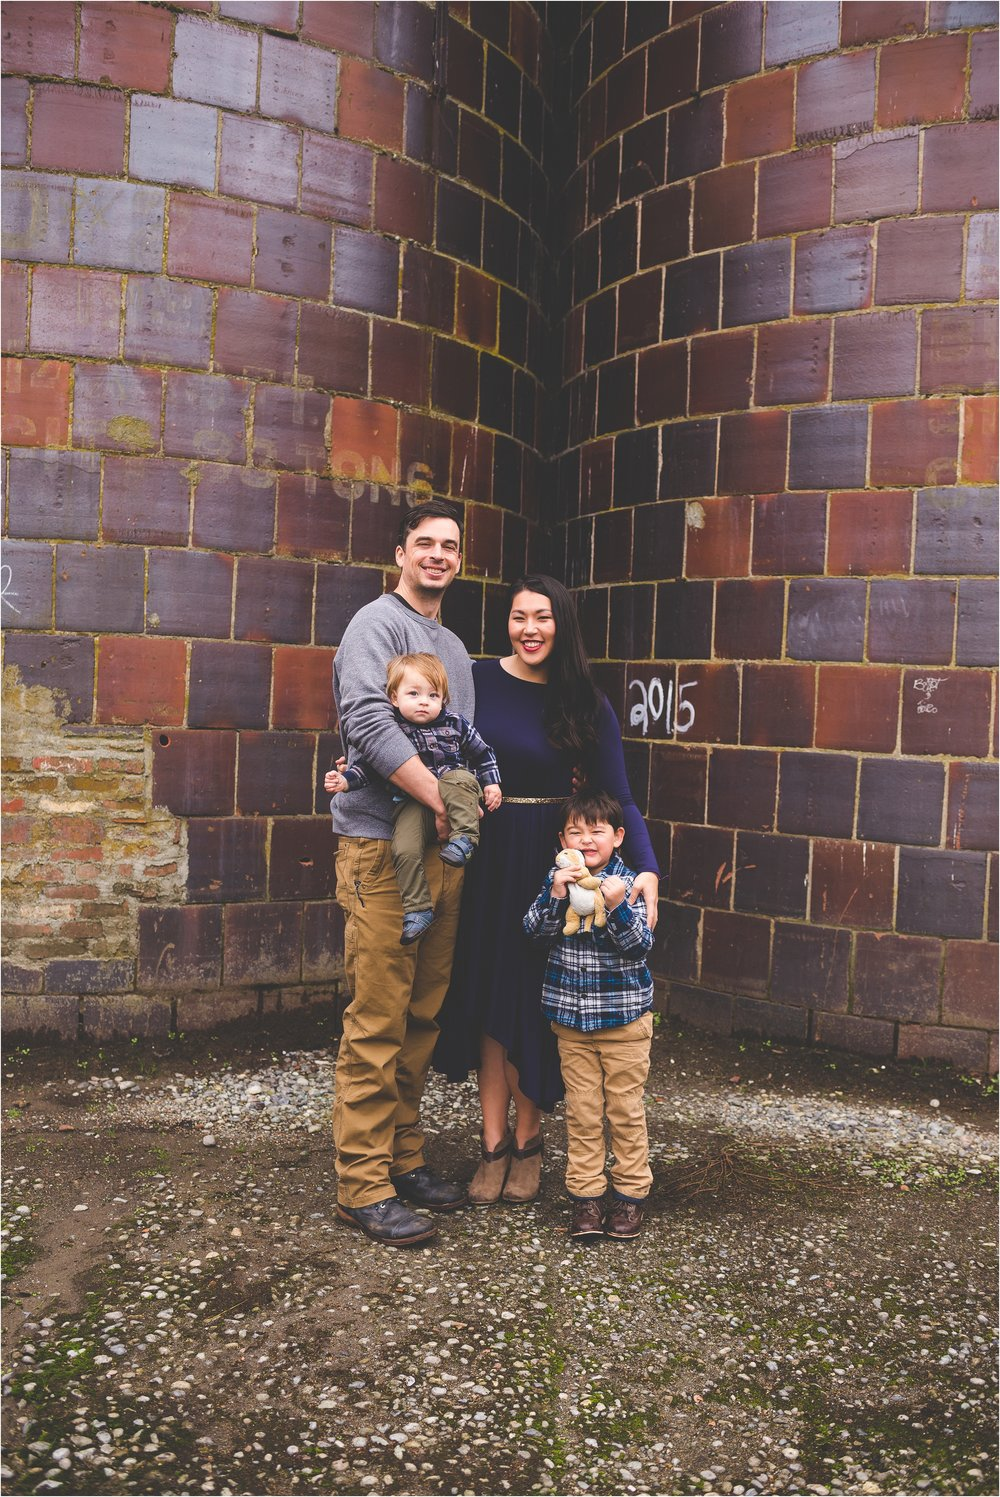 fort-steilacoom-park-family-session-jannicka-mayte-pacific-northwest-lifestyle-photographer_0038.jpg